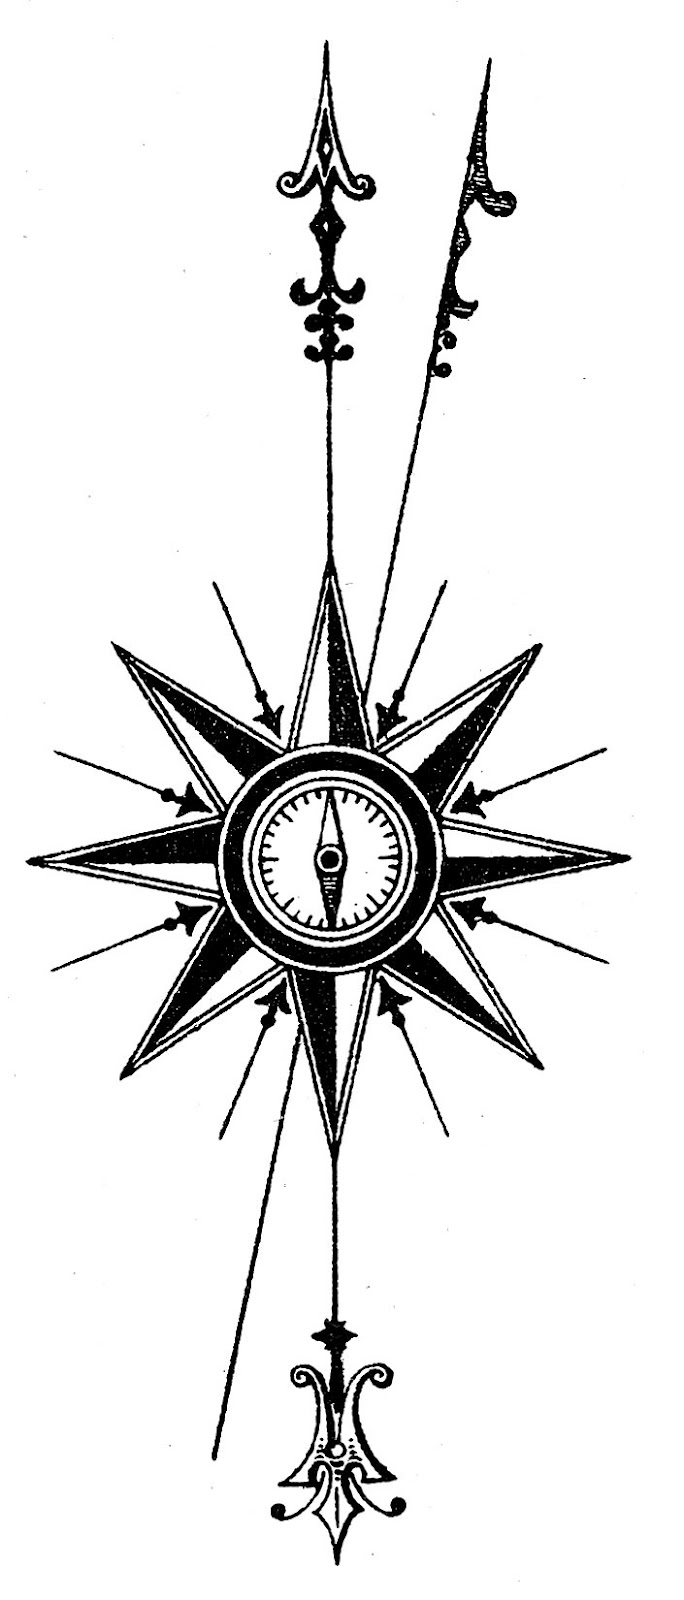 684x1600 Free Clipart Compass Rose Line Drawing